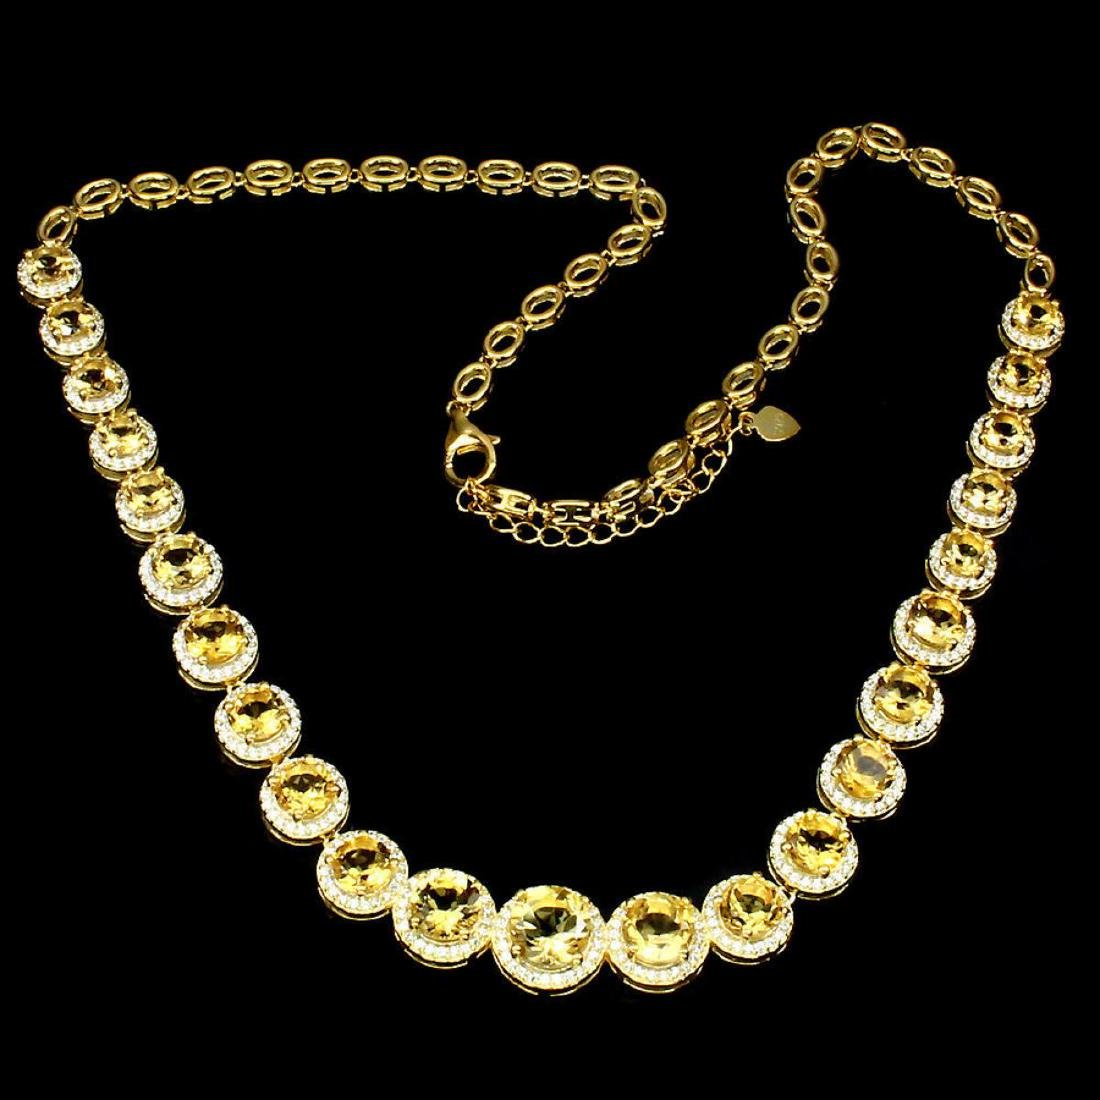 Natural AAA Top Rich Yellow Citrine Necklace - 2